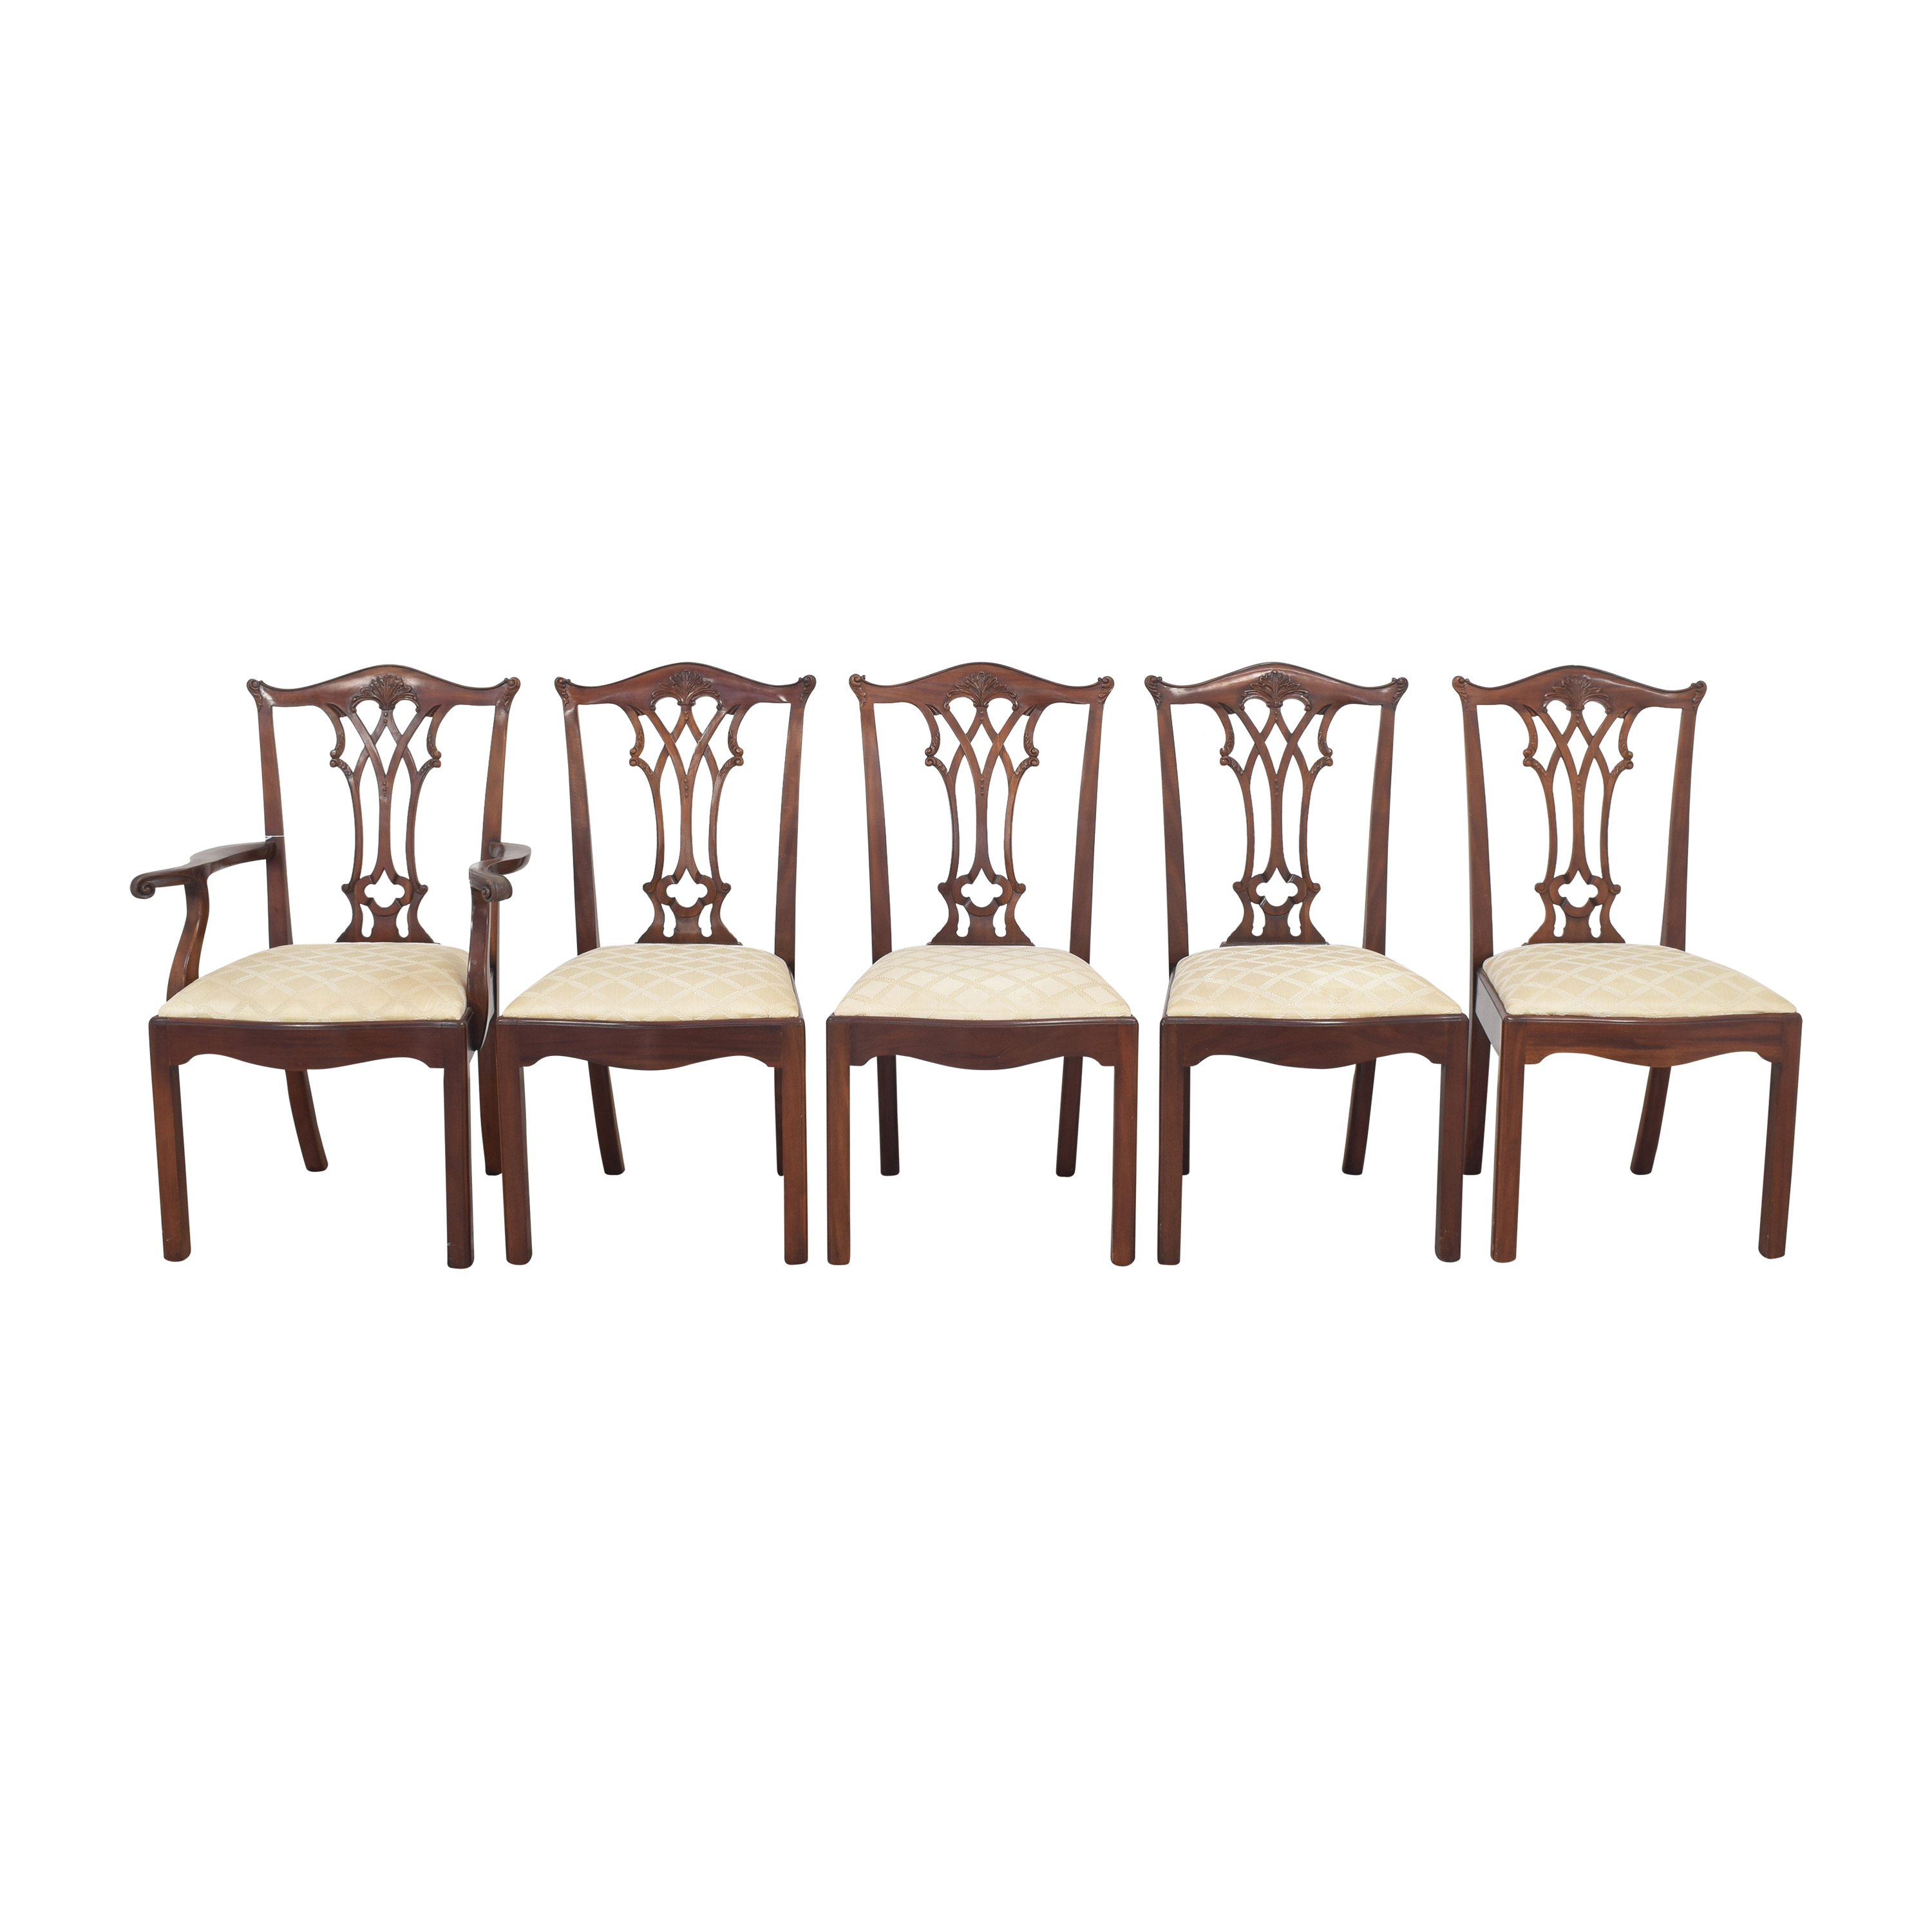 shop Maitland-Smith Maitland-Smith Connecticut Dining Chairs online